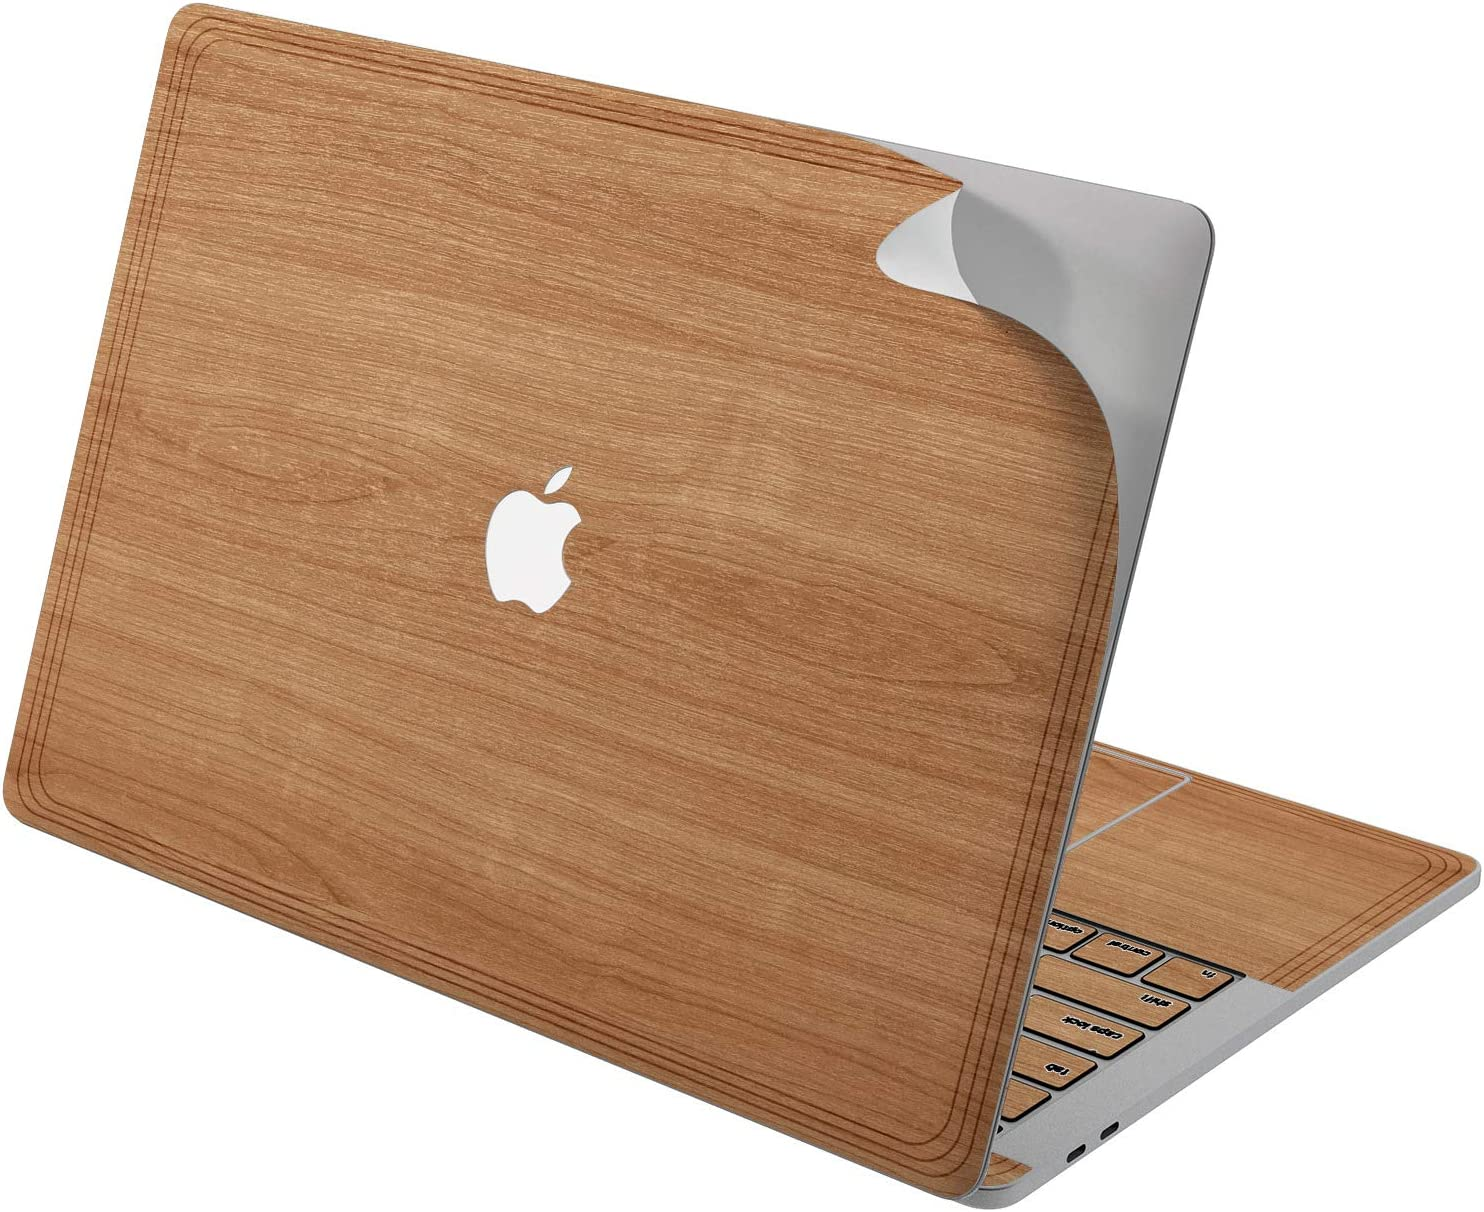 "Cavka Vinyl Decal Skin for Apple MacBook Pro 13"" 2019 15"" 2018 Air 13"" 2020 Retina 2015 Mac 11"" Mac 12"" Laptop Protective Classy Cover Glam Print Wood Minimal Sticker Brown Basic Simple Solid Design"